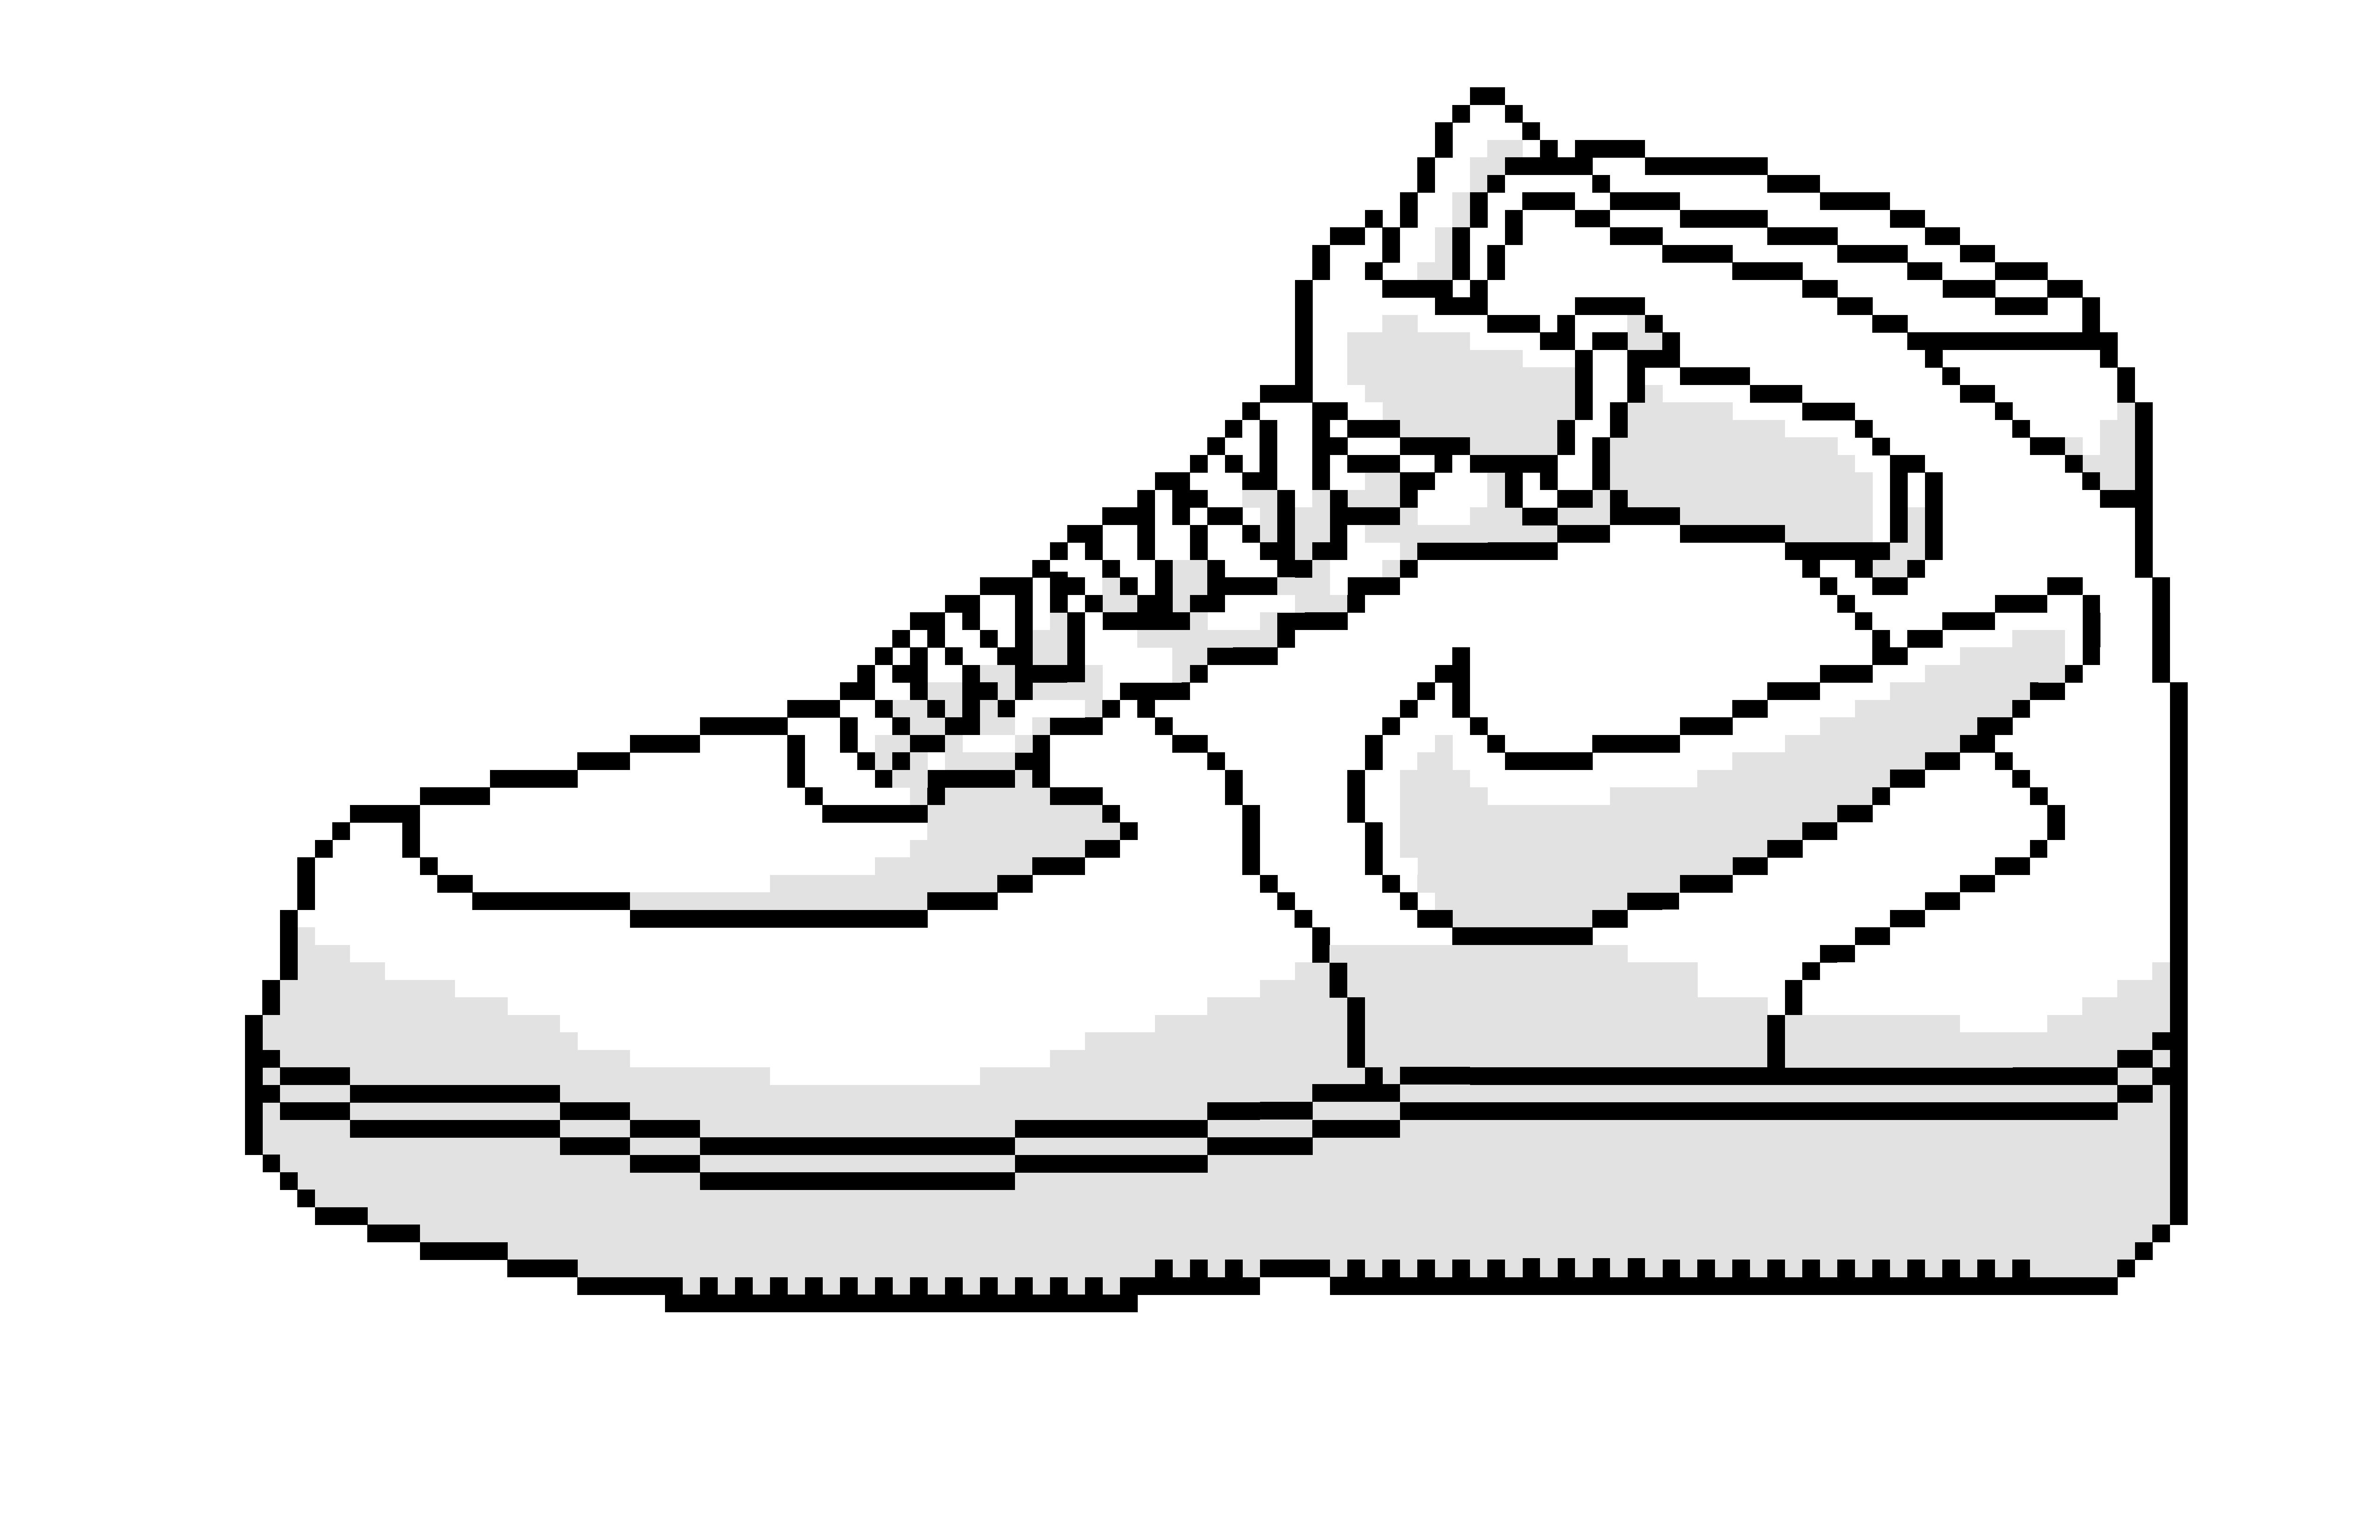 8 Bit Air Force Ones (Nike) | Air force ones, 8 bit, White nikes